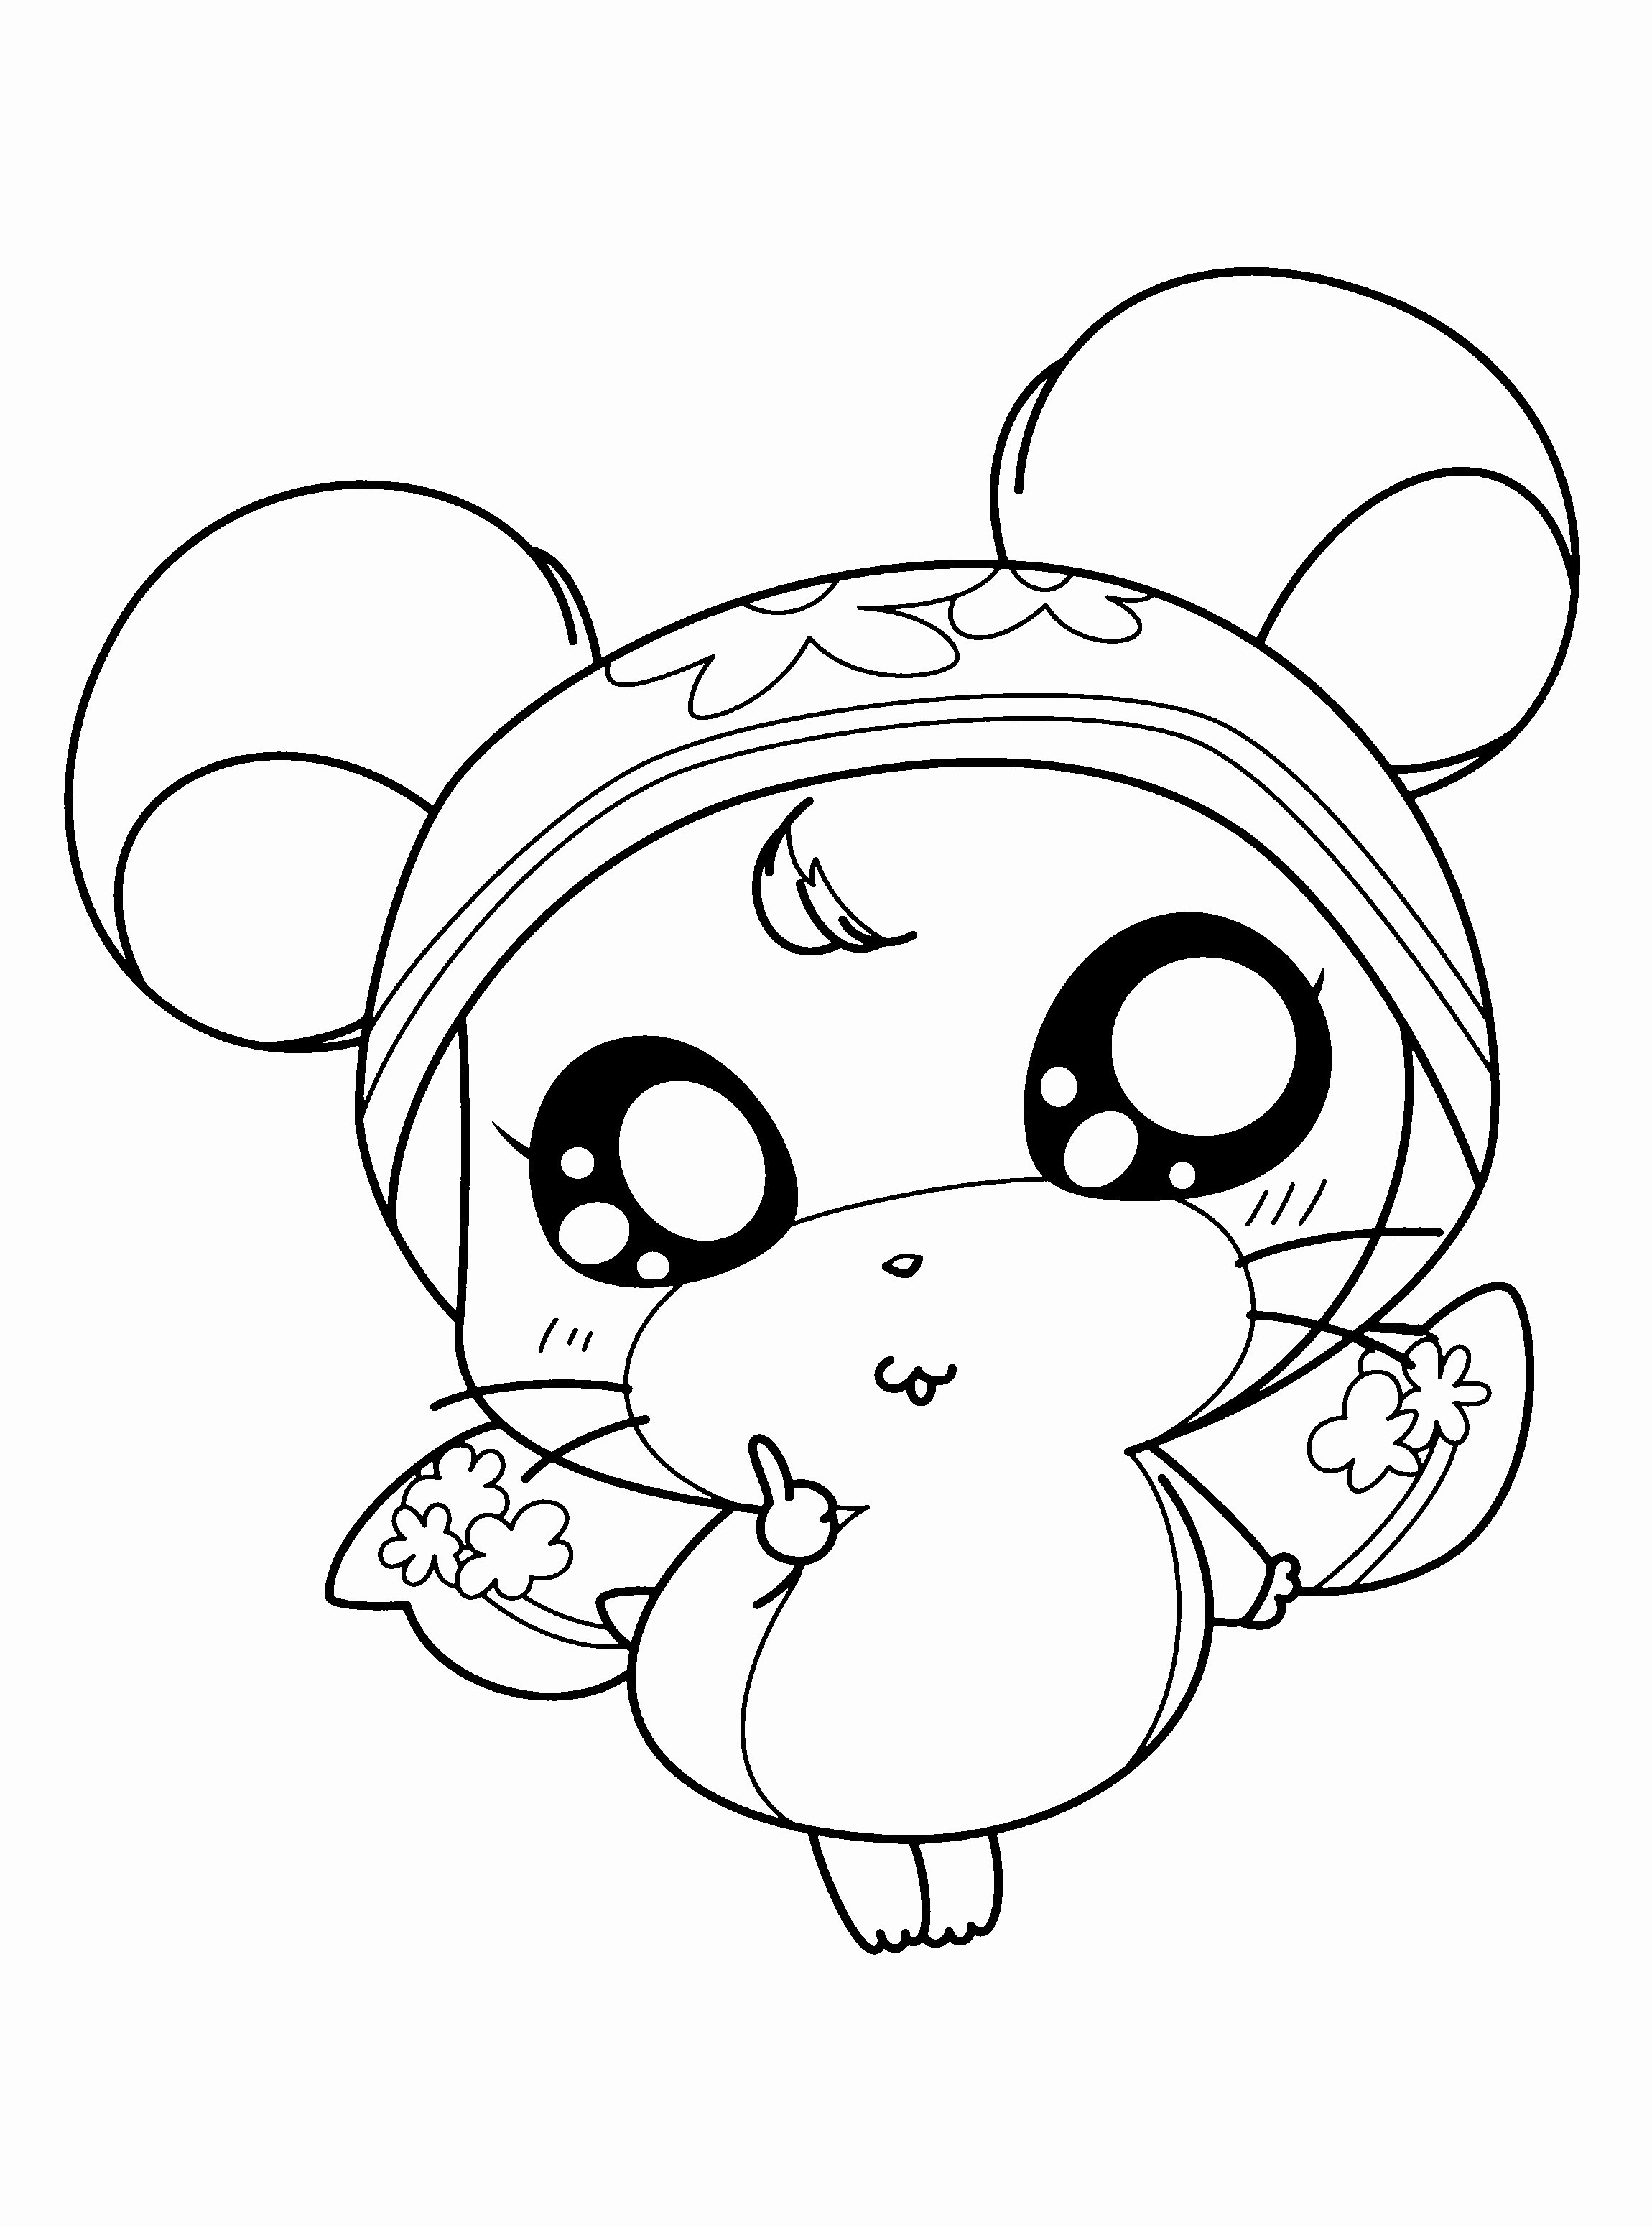 Wallpaper Coloring Pages  Download 9q - Free For Children